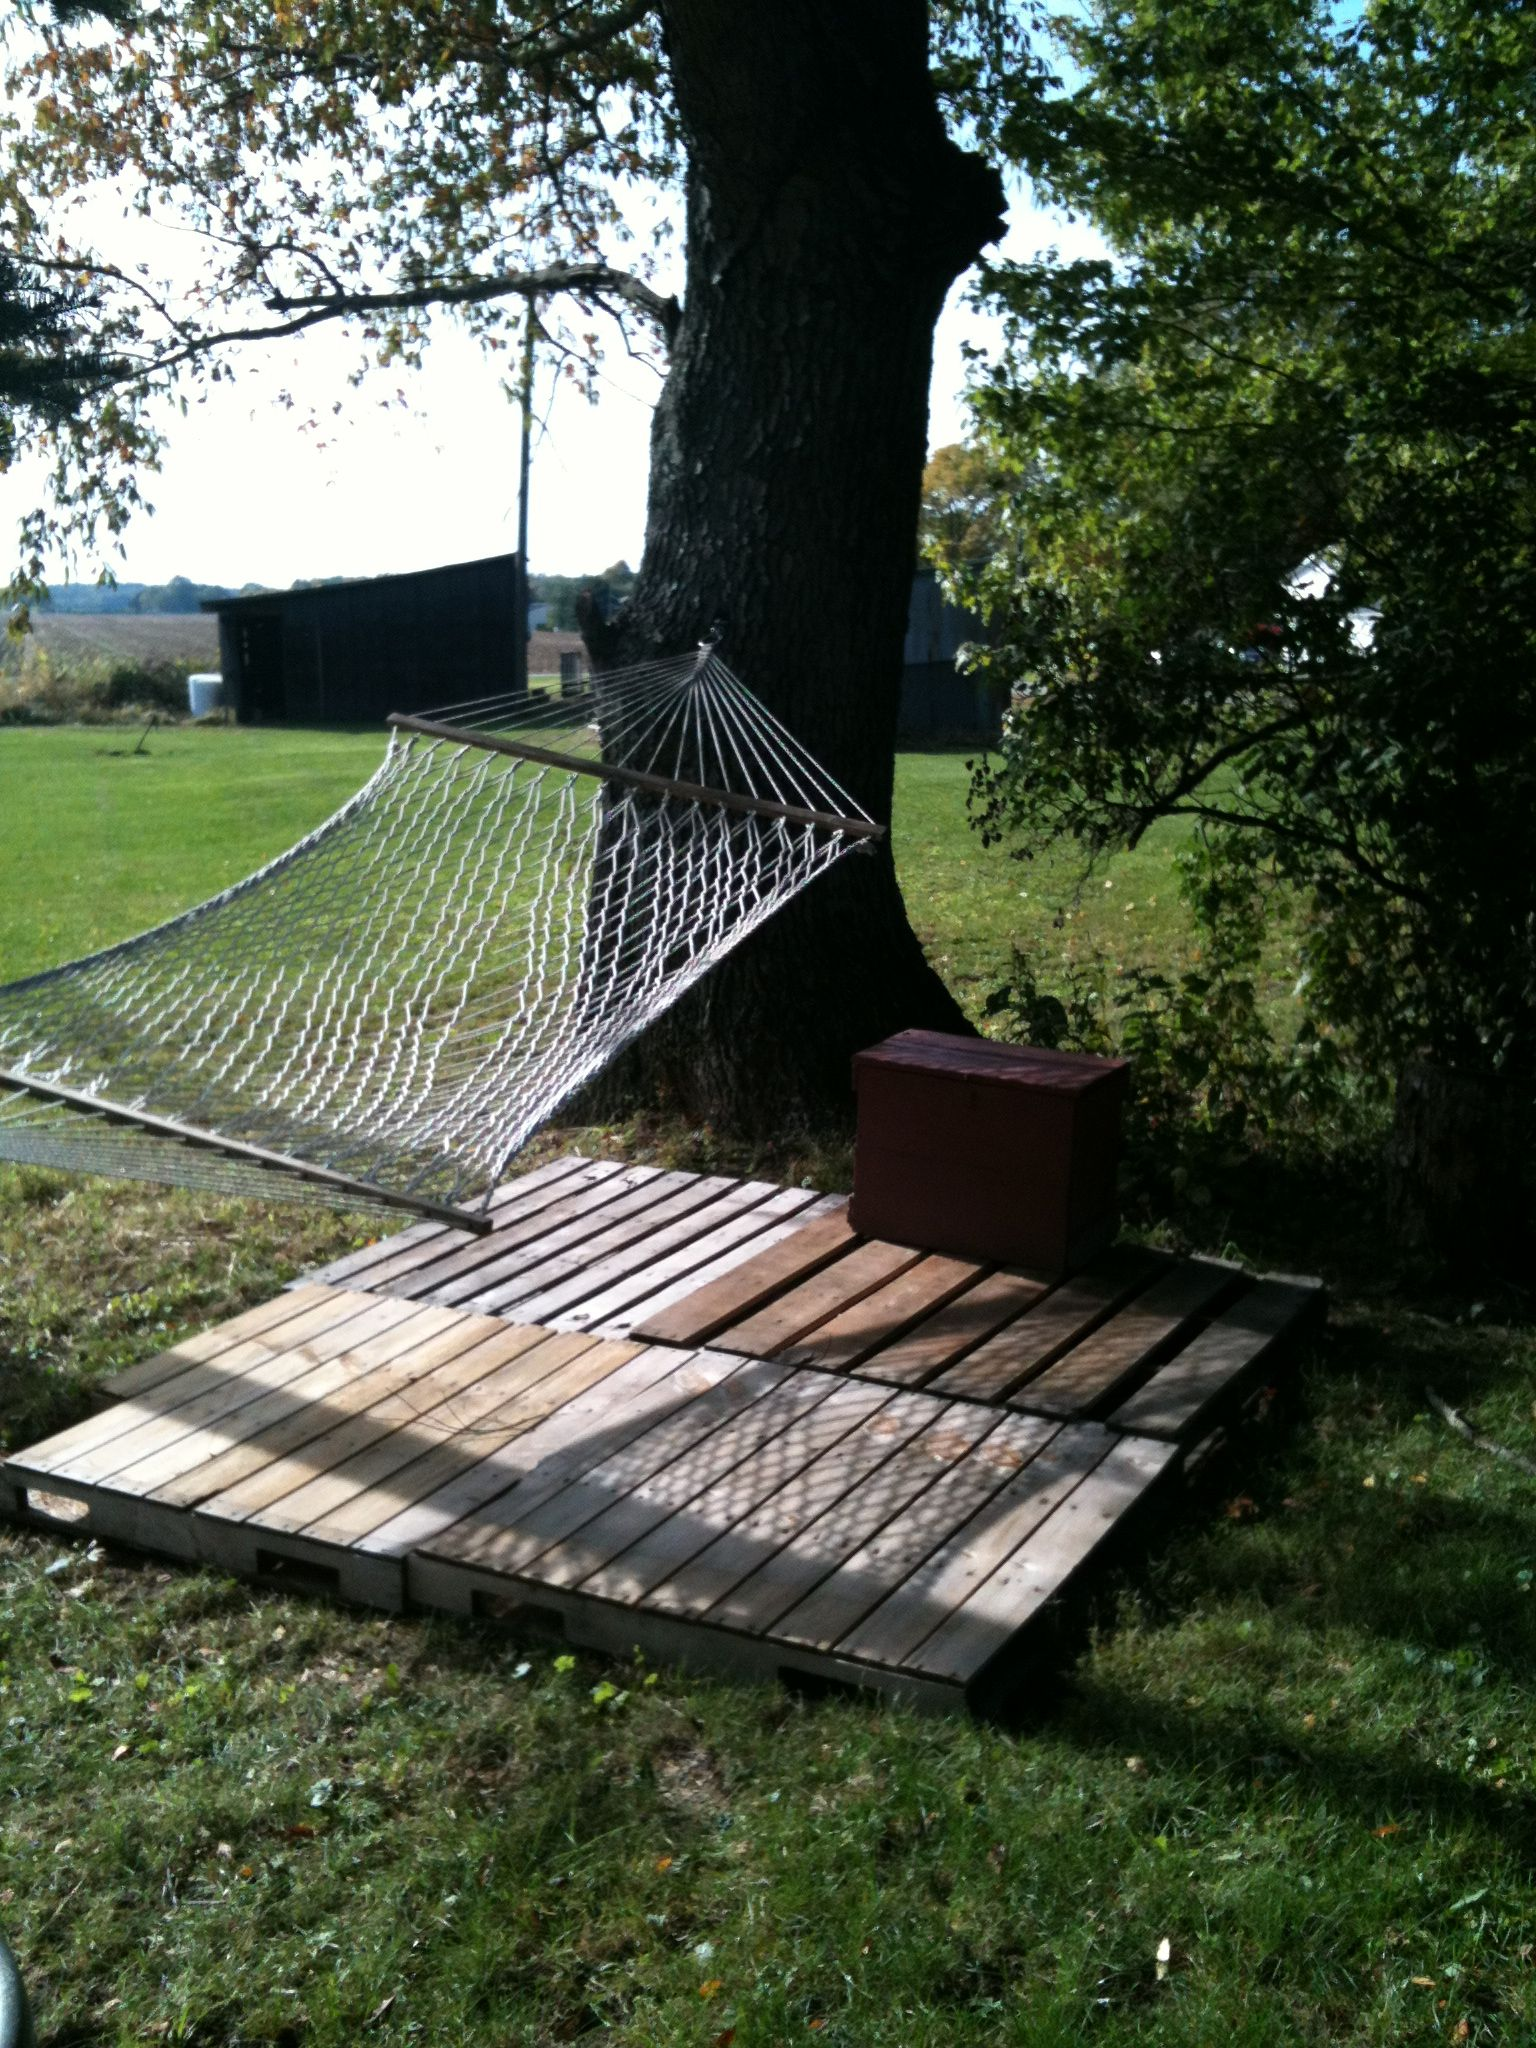 A Deck For My Hammock Out Of Pallets